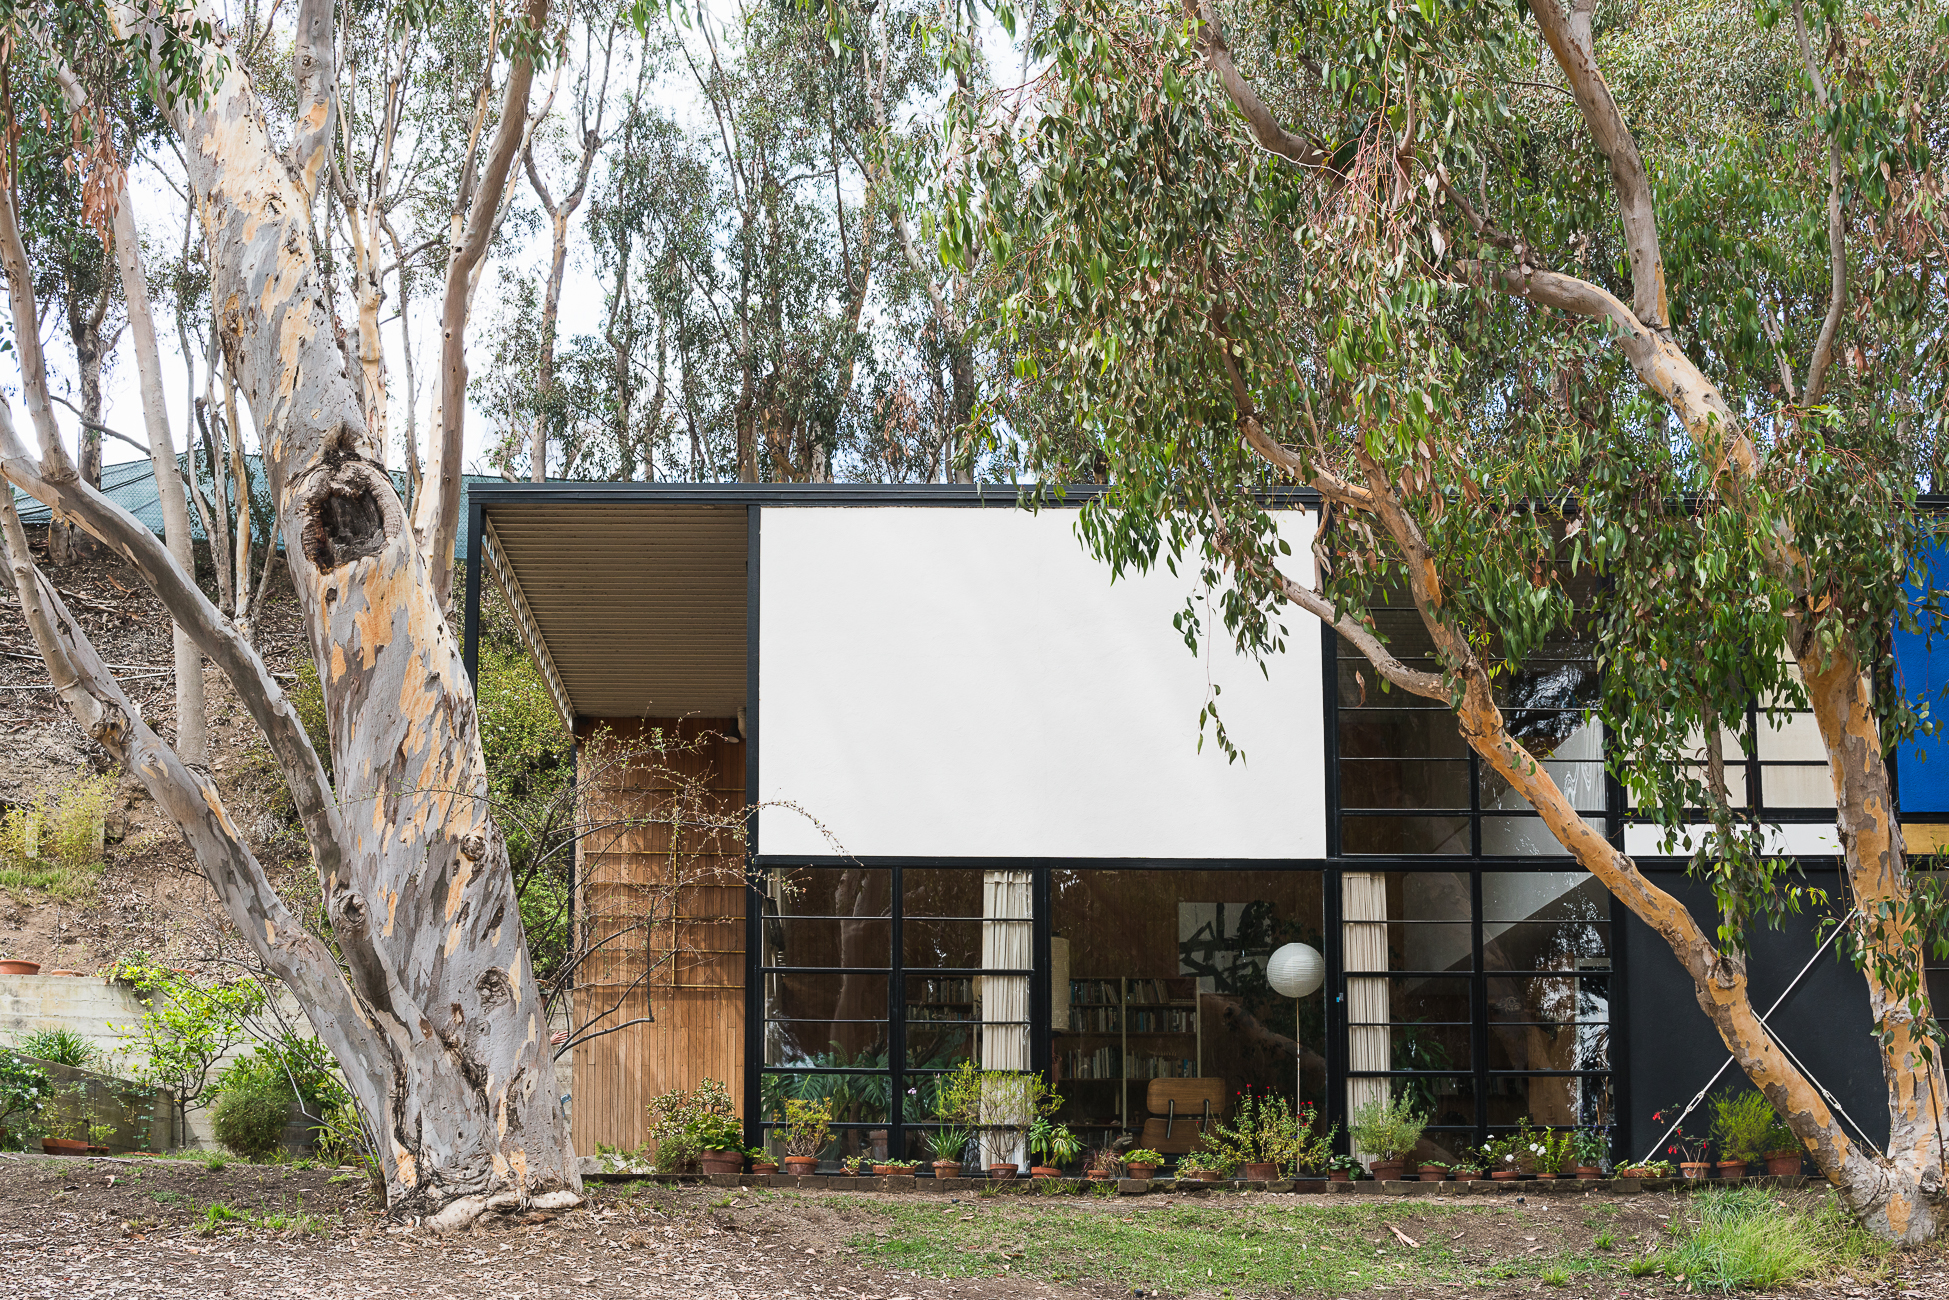 Visiting the Eames Case Study #8 / See and Savour